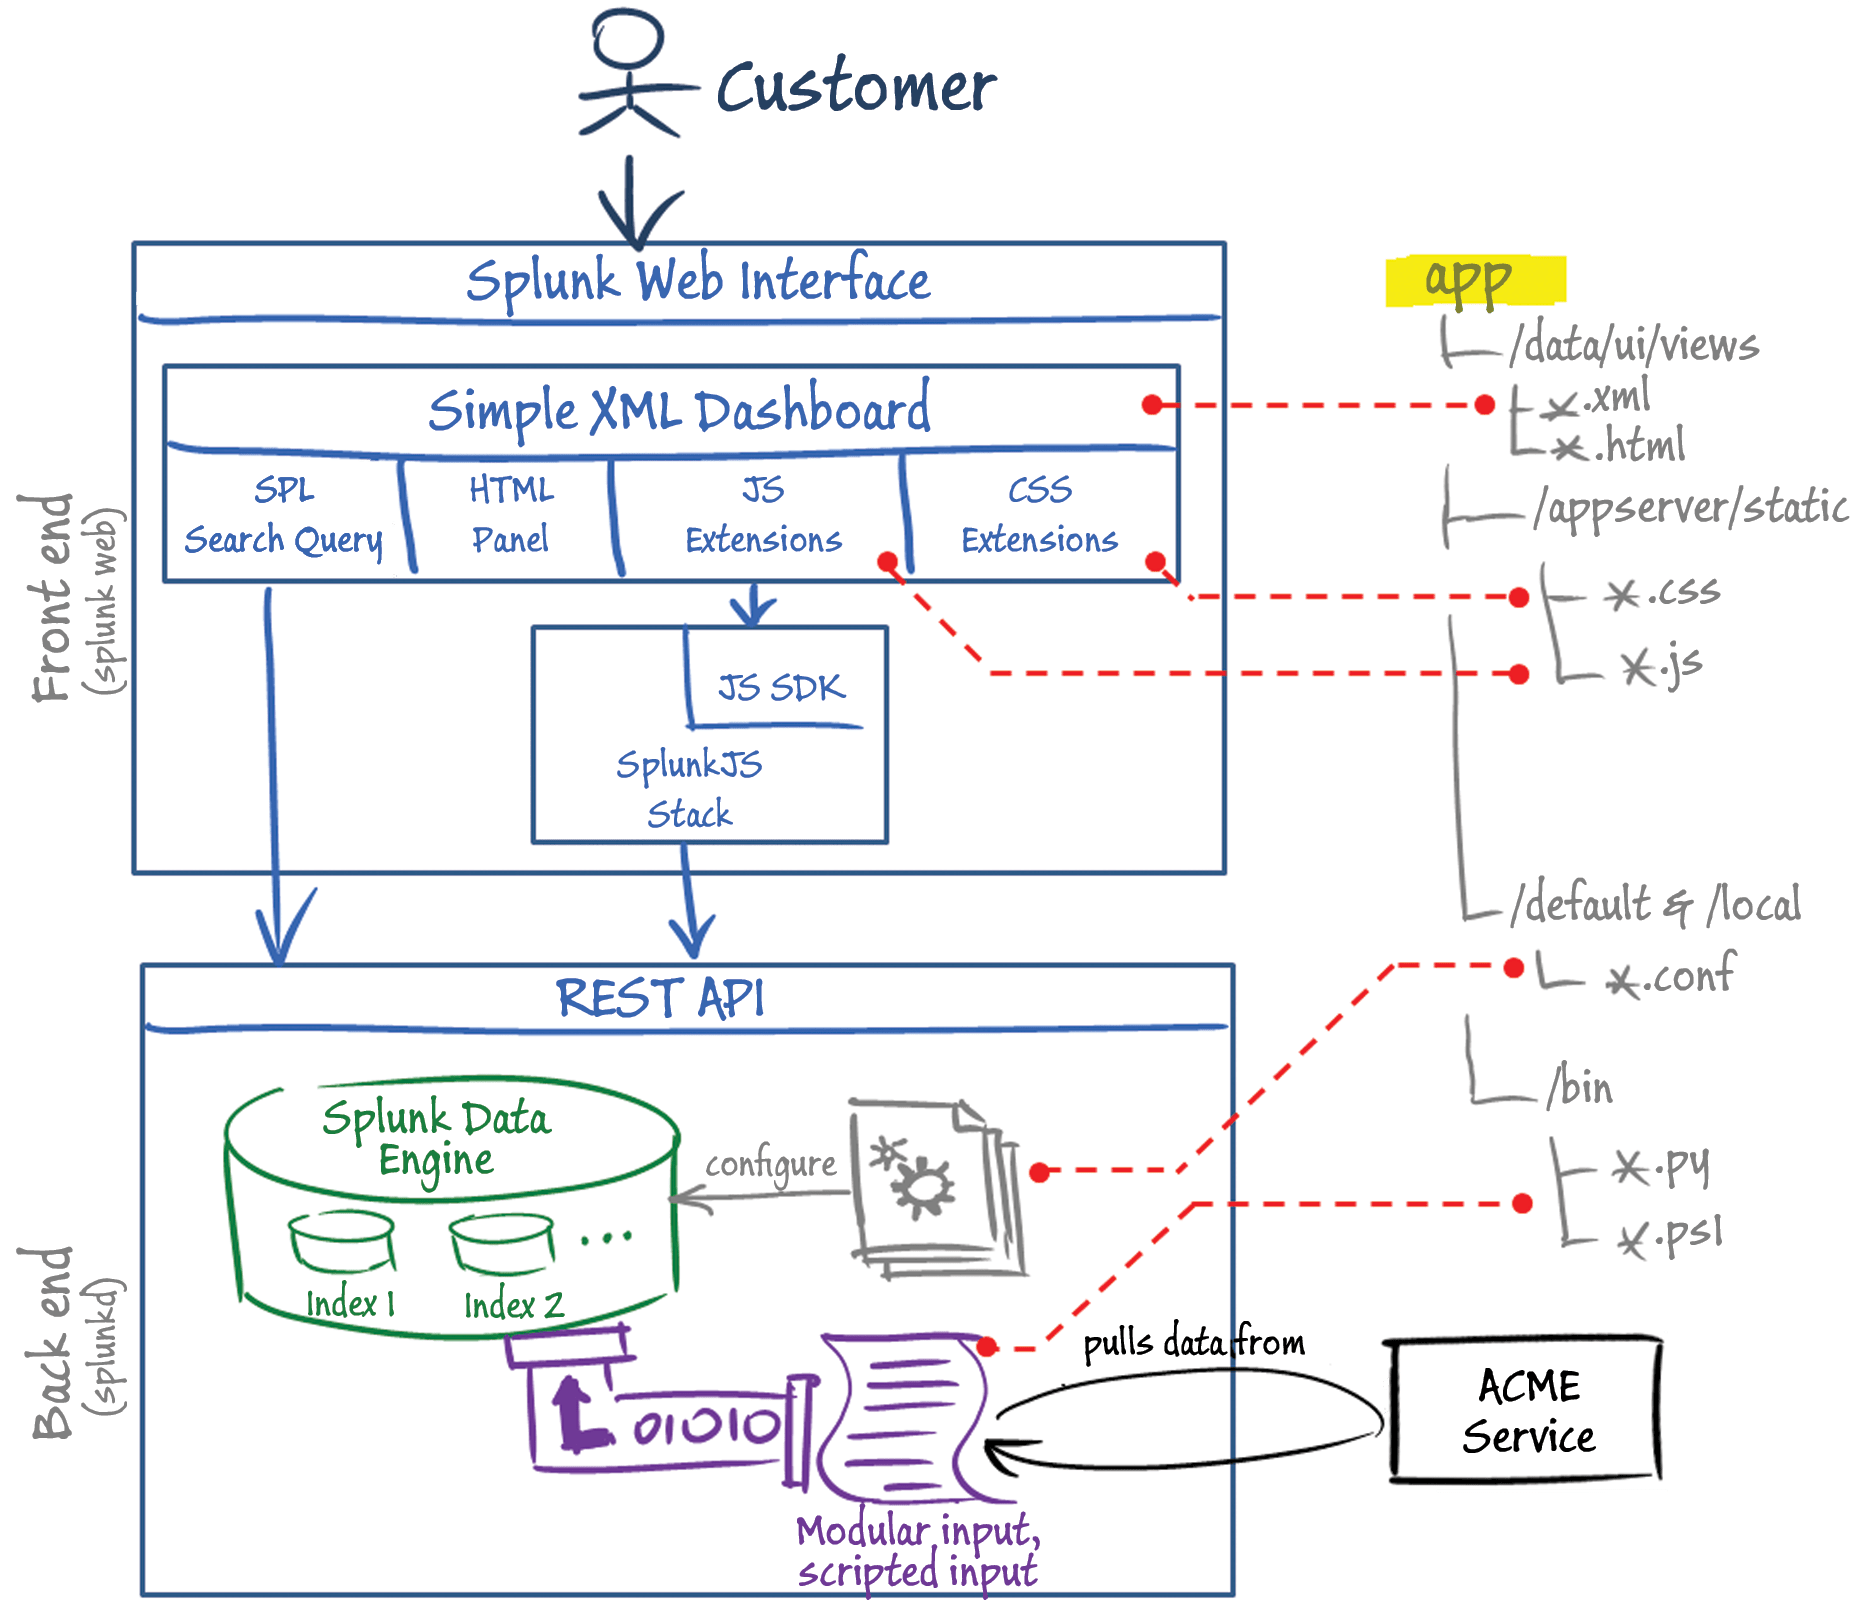 front end diagram guitar jack socket wiring parts of a splunk enterprise app architecture